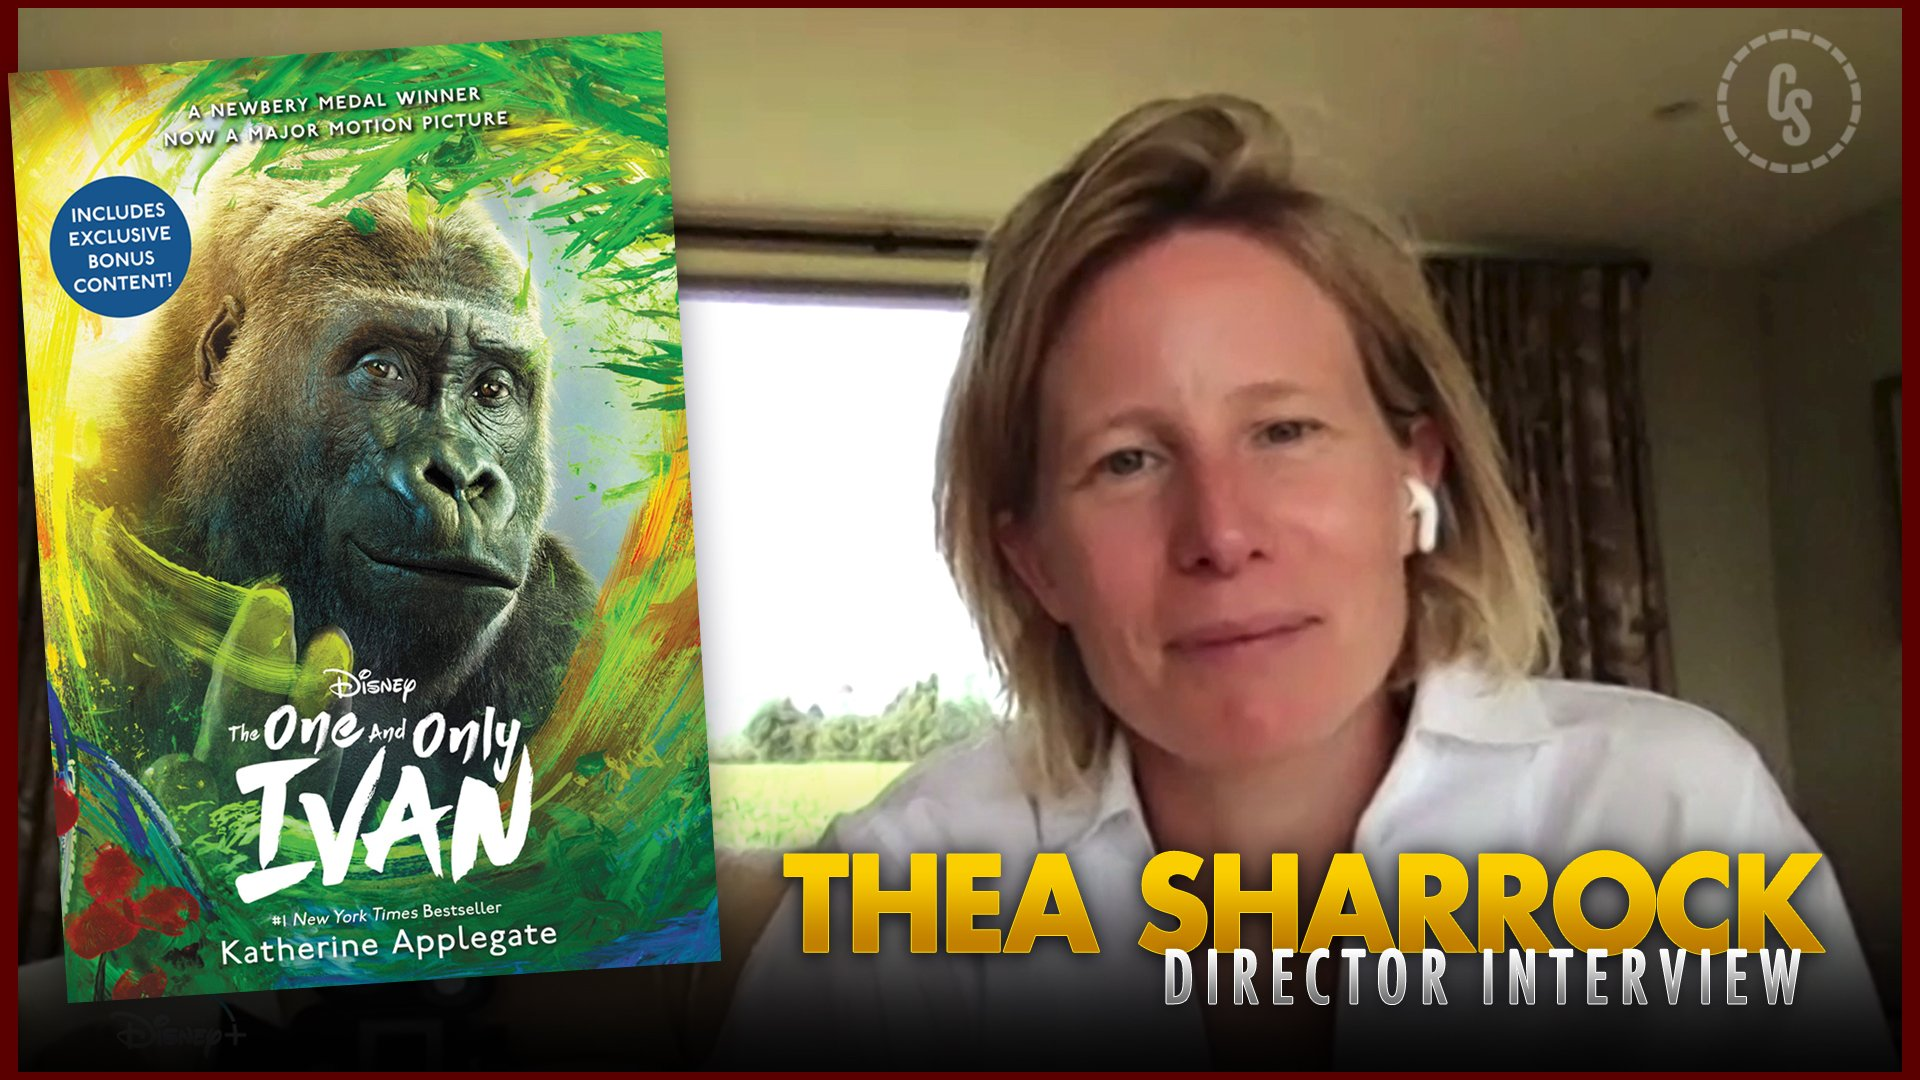 CS Video: The One and Only Ivan Interview With Director Thea Sharrock